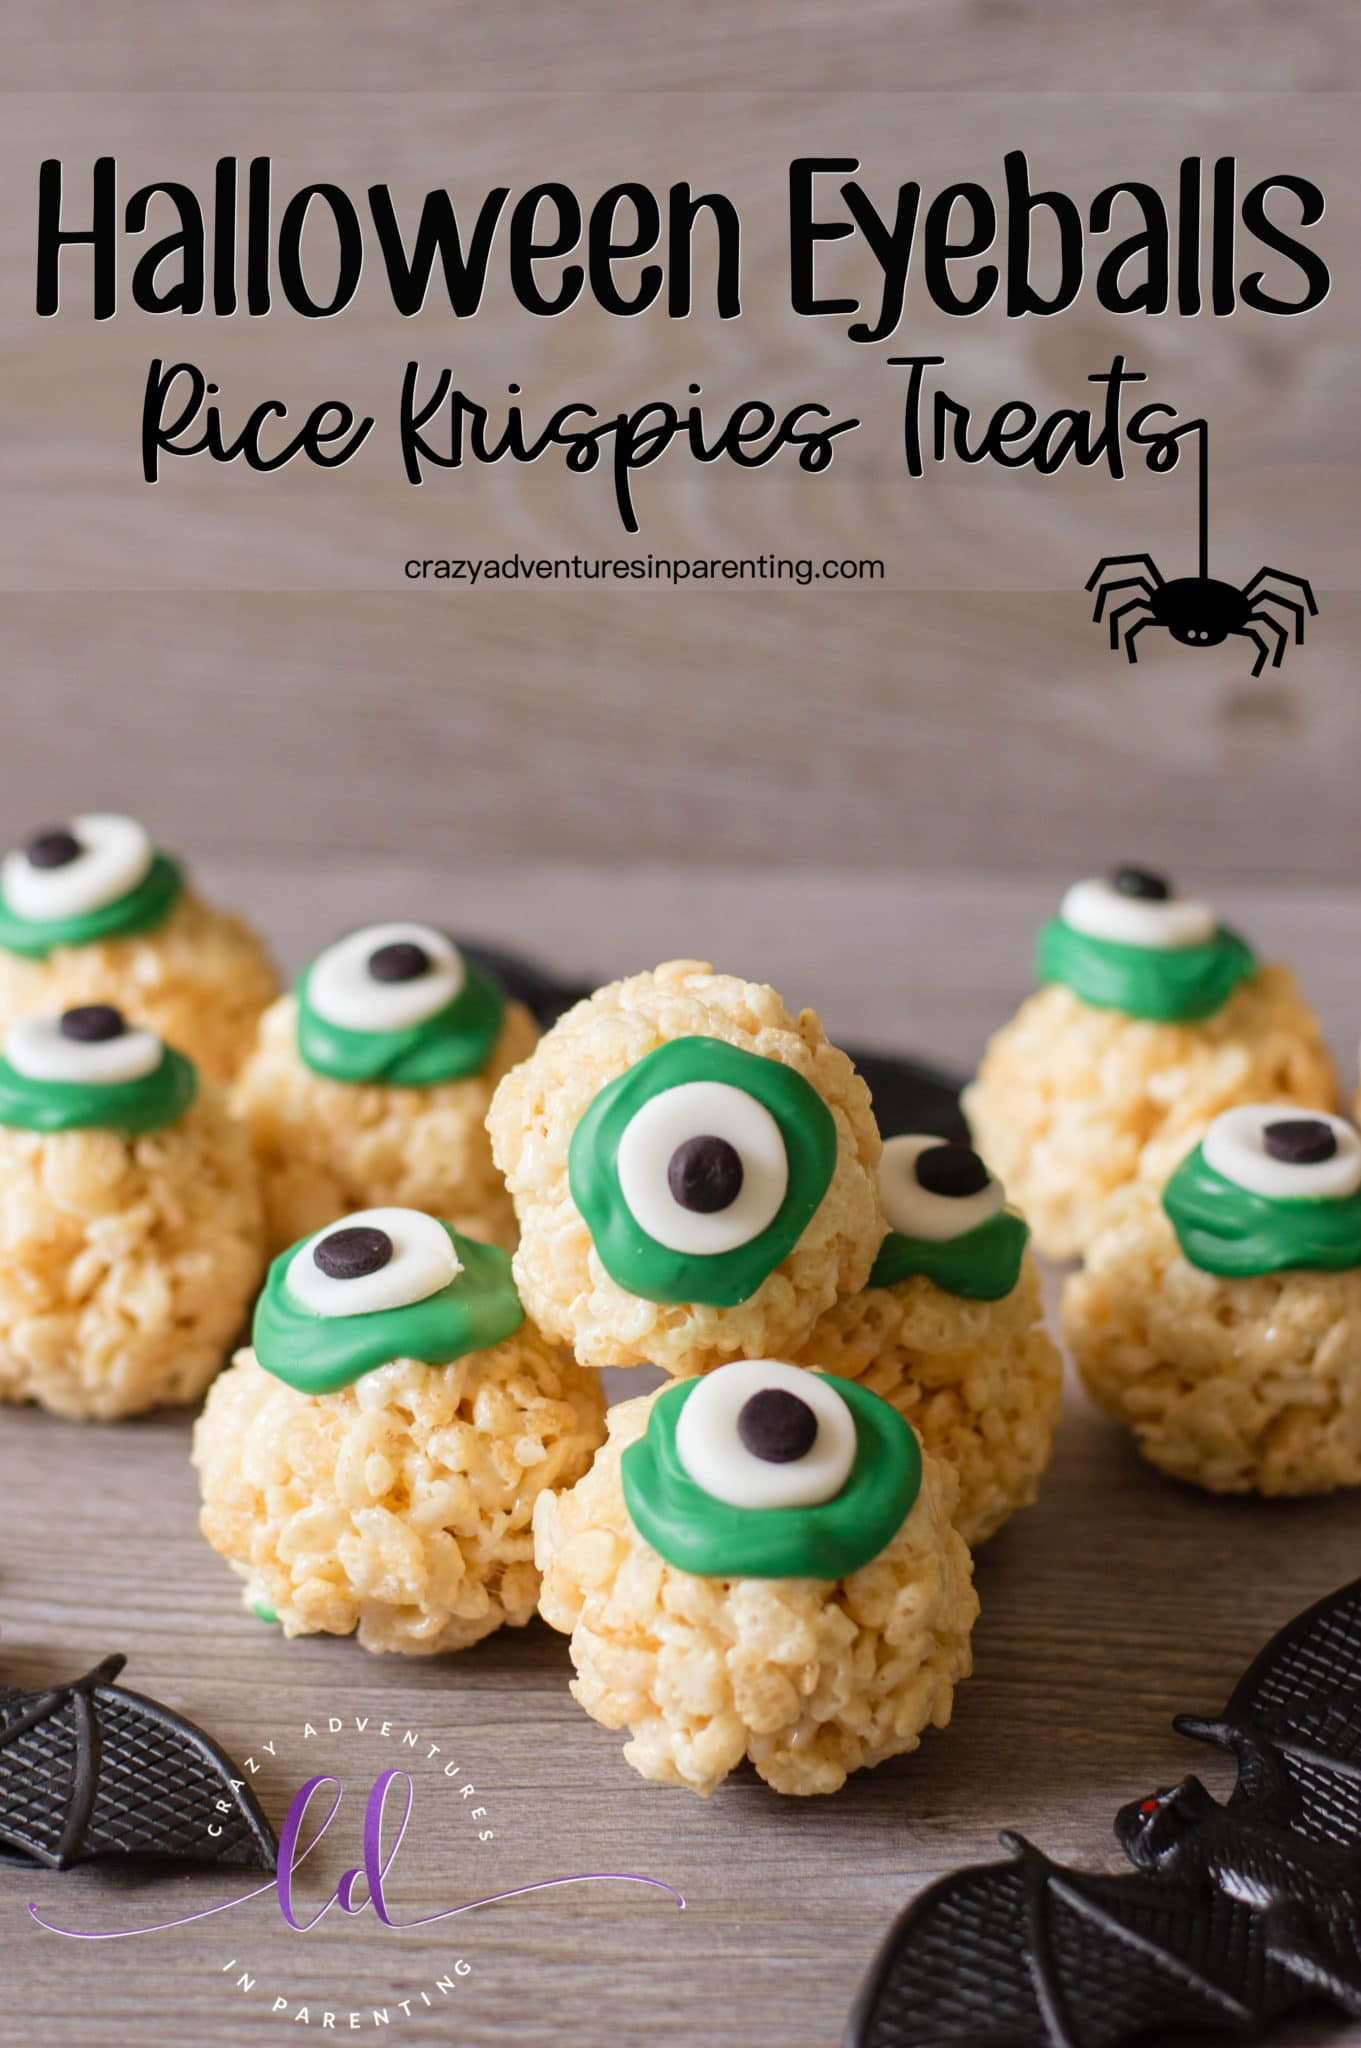 Halloween Eyeballs Rice Krispies Treats